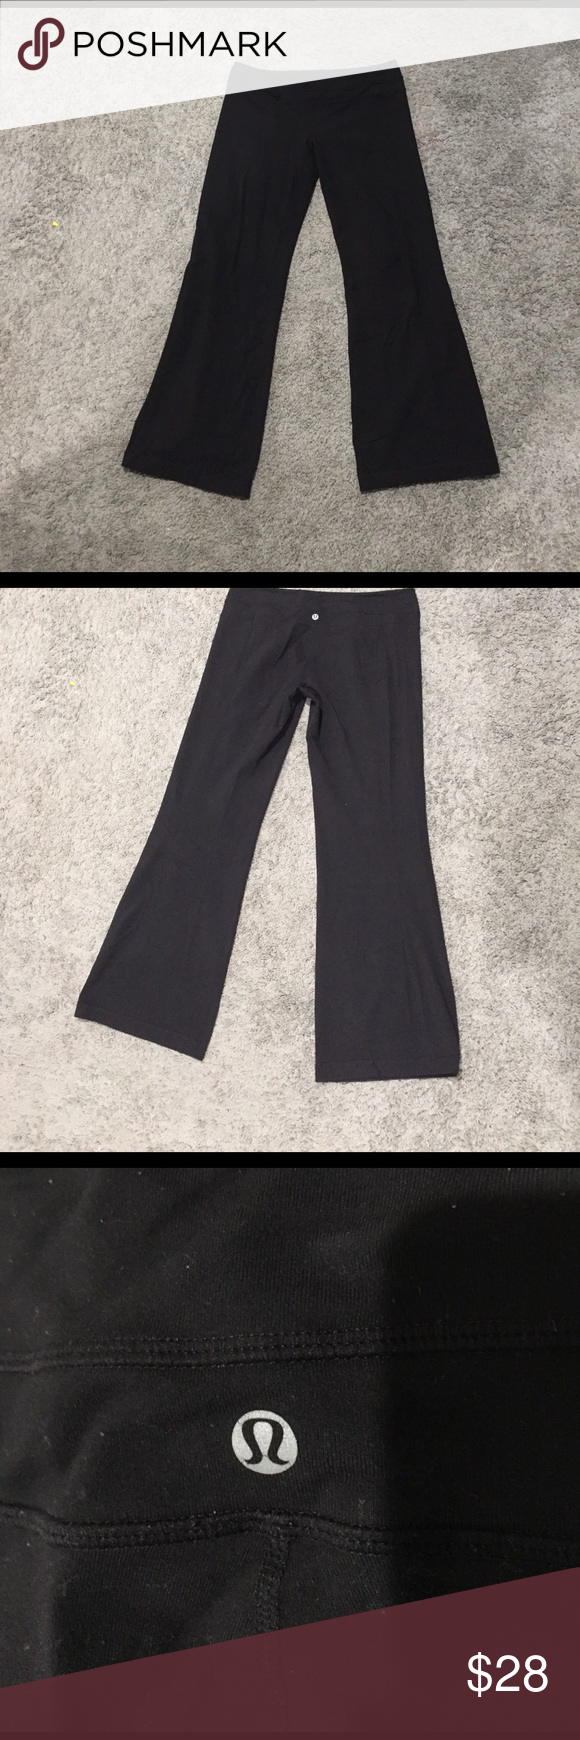 Lululemon black groove pants size 12 Black lululemons reposh! I lost weight and they don't fit me anymore ;) some piling, but otherwise in great used condition lululemon athletica Pants Track Pants & Joggers